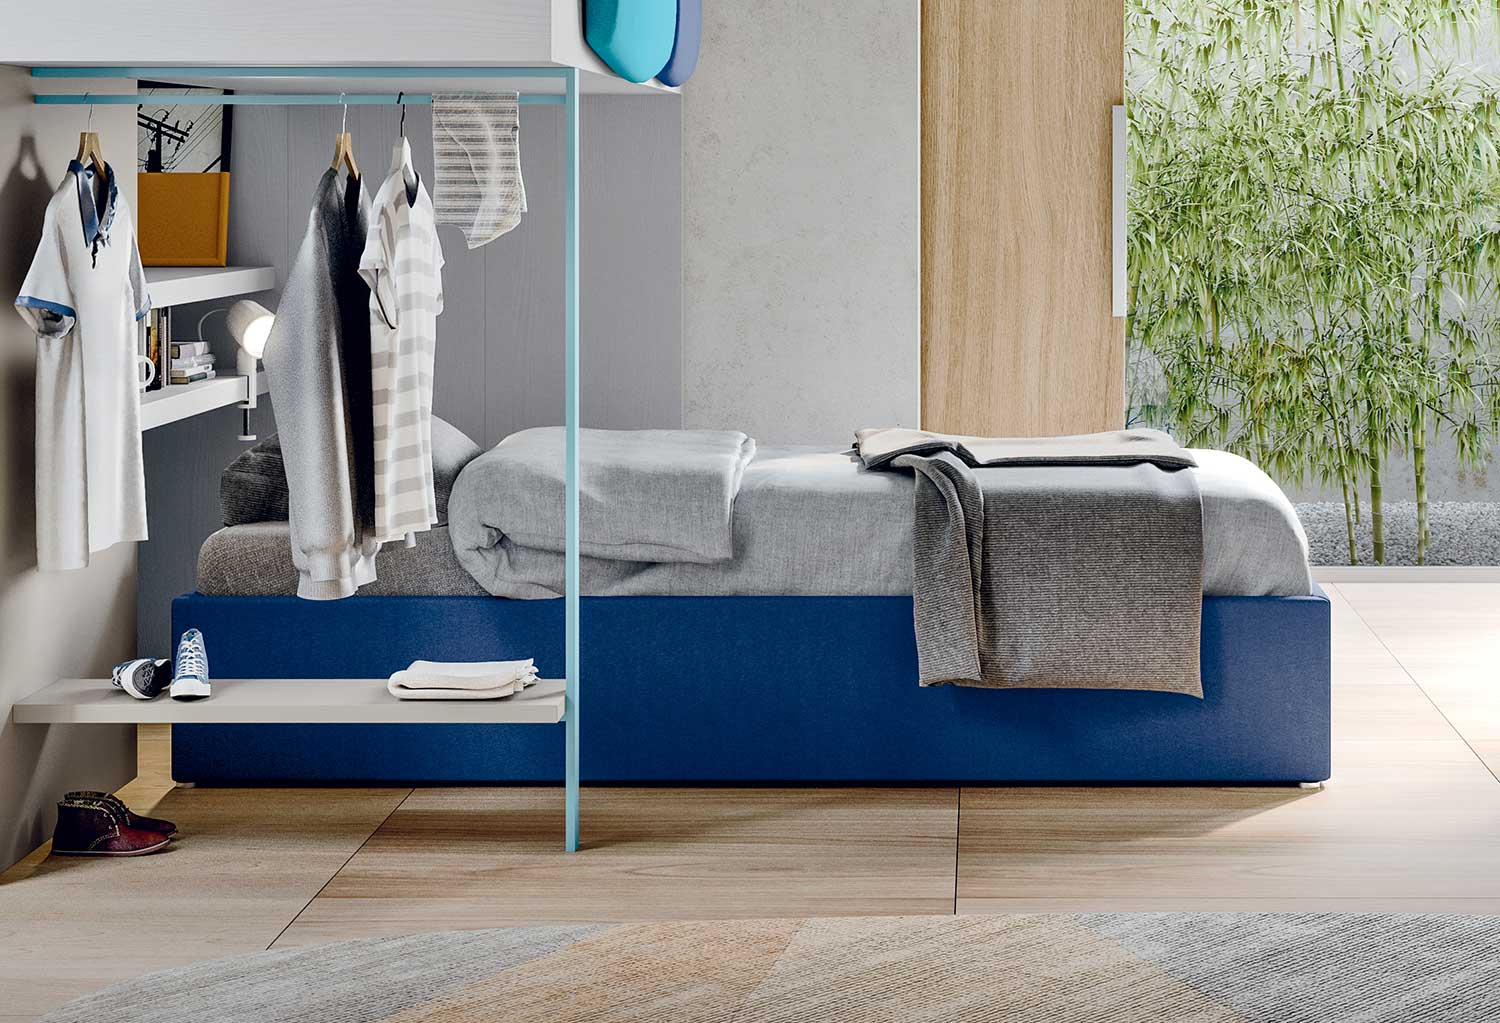 Space saving compact divan bed Smart is ideal as a low sleeper to complete a loft bed